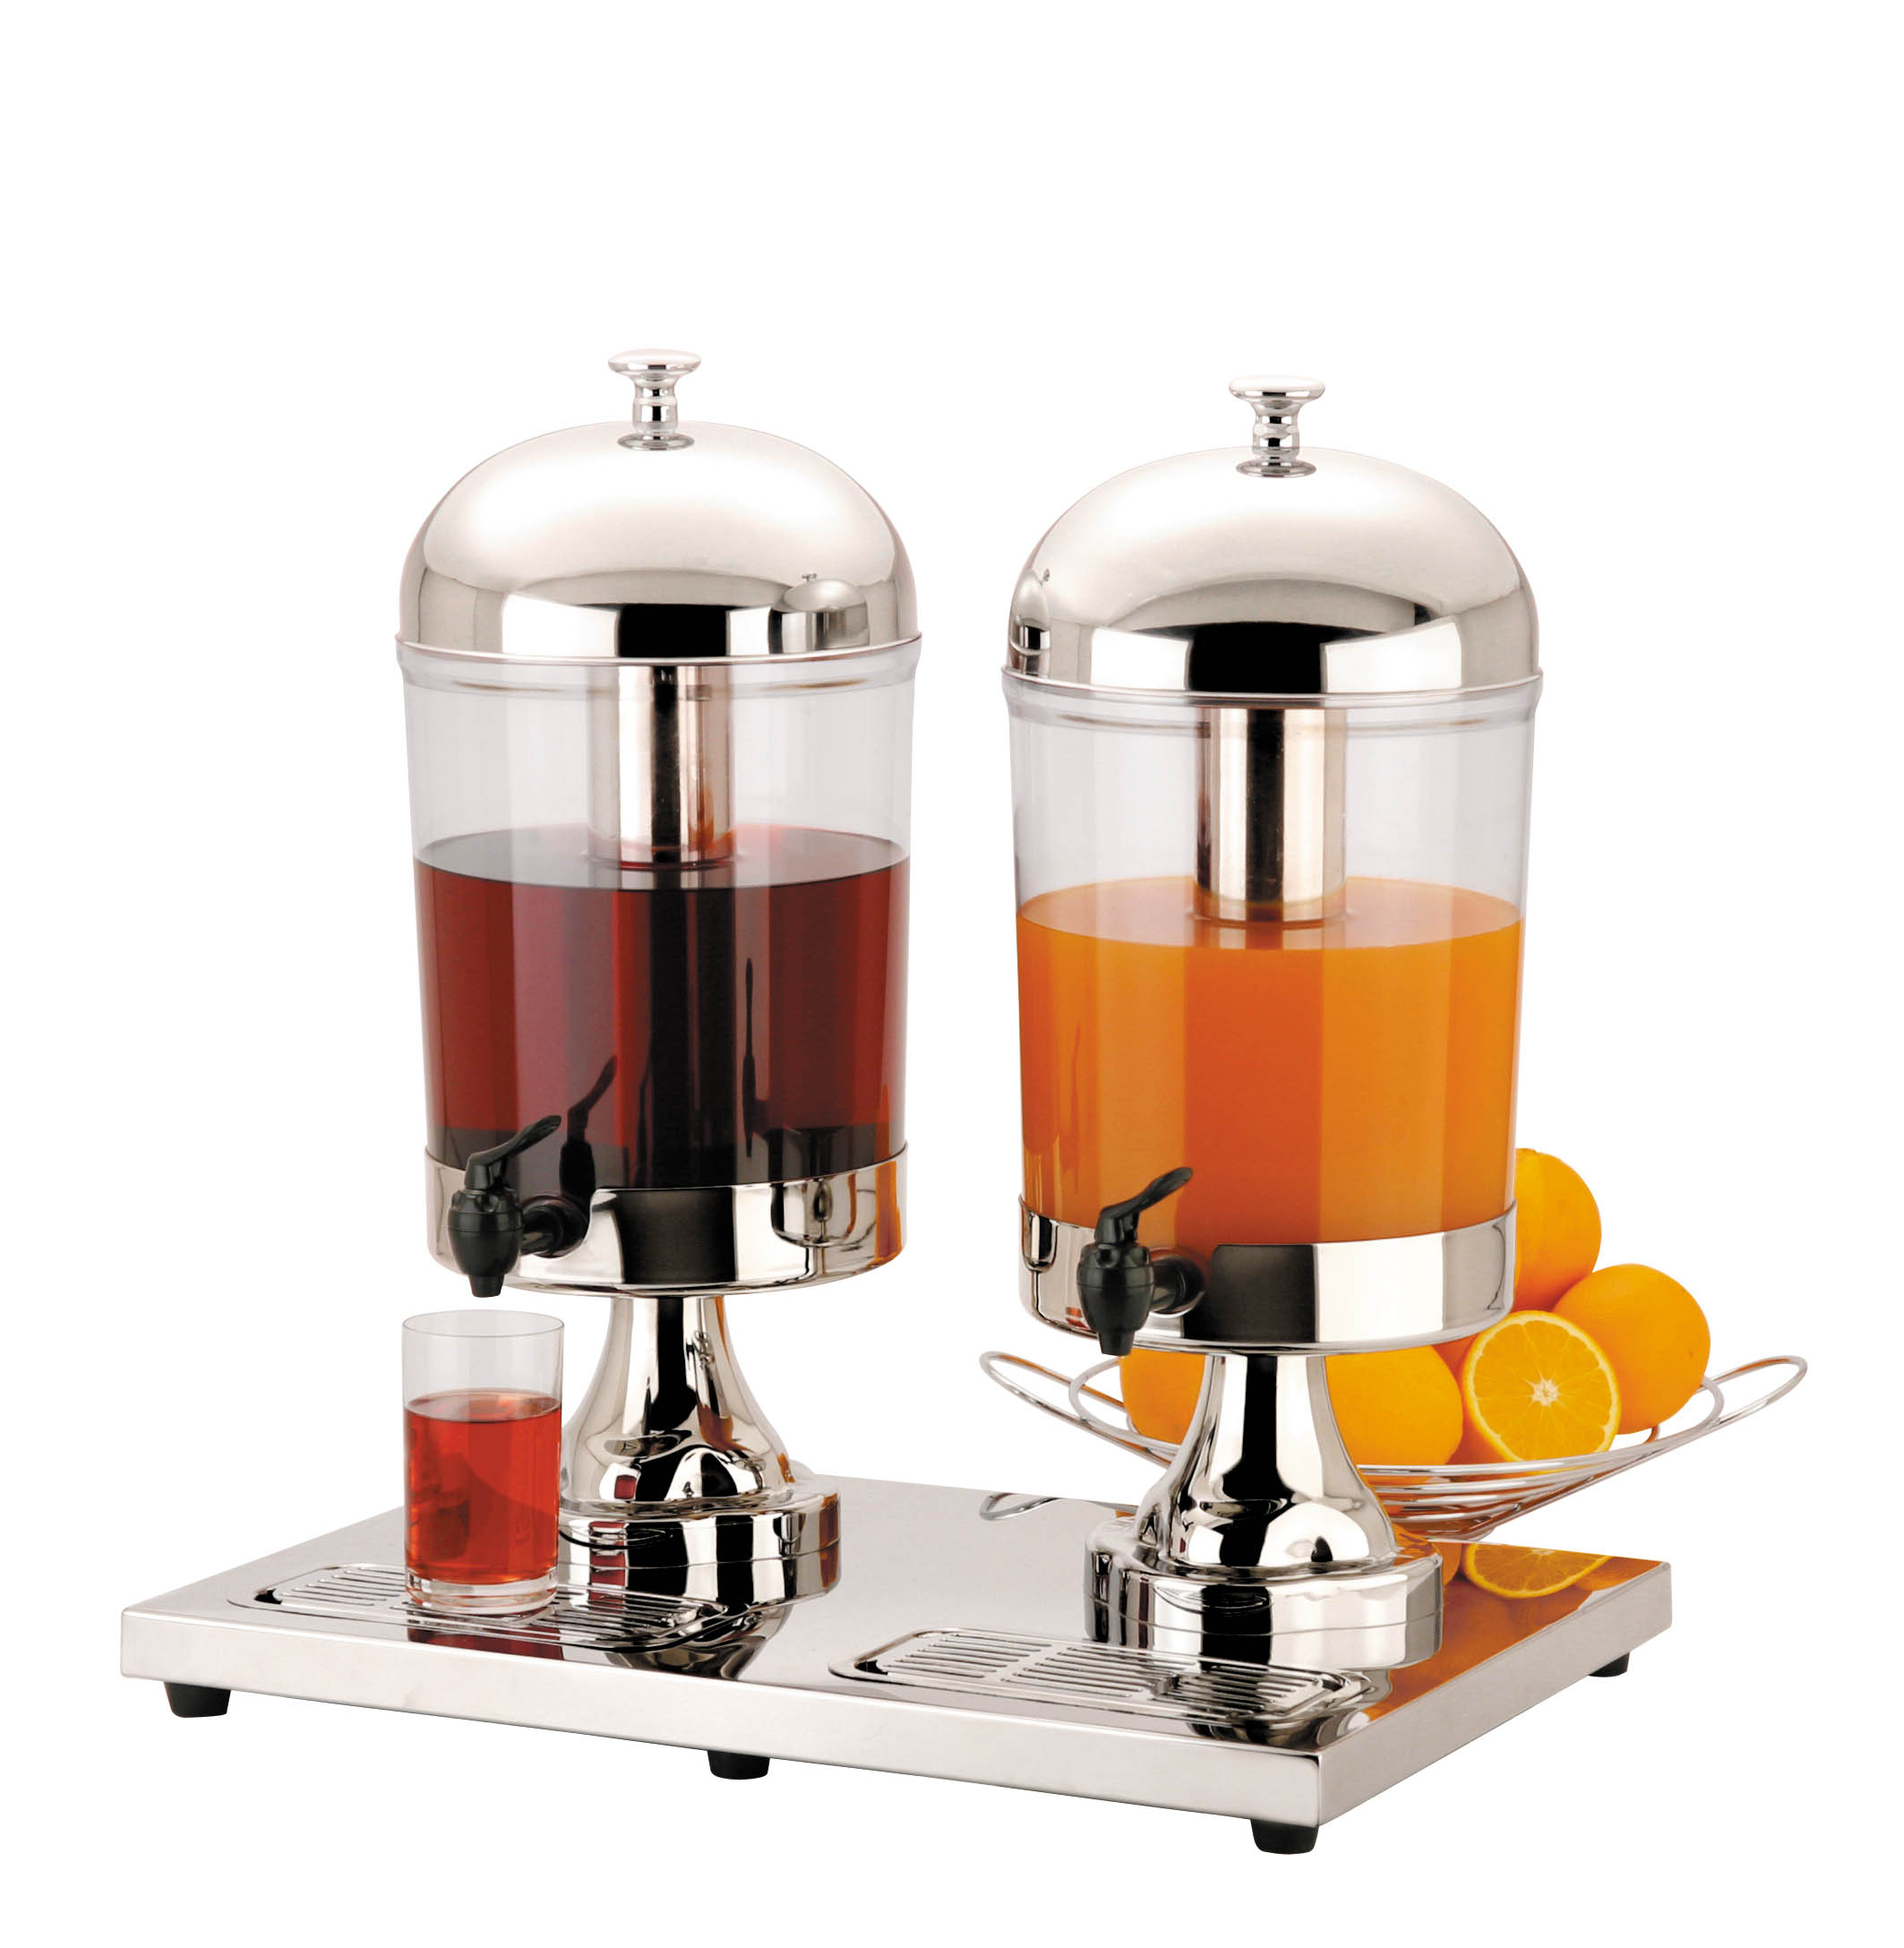 Looking For Dining Room Sets Double 2x8 Litre Chilled Juice Dispenser For Restaurants